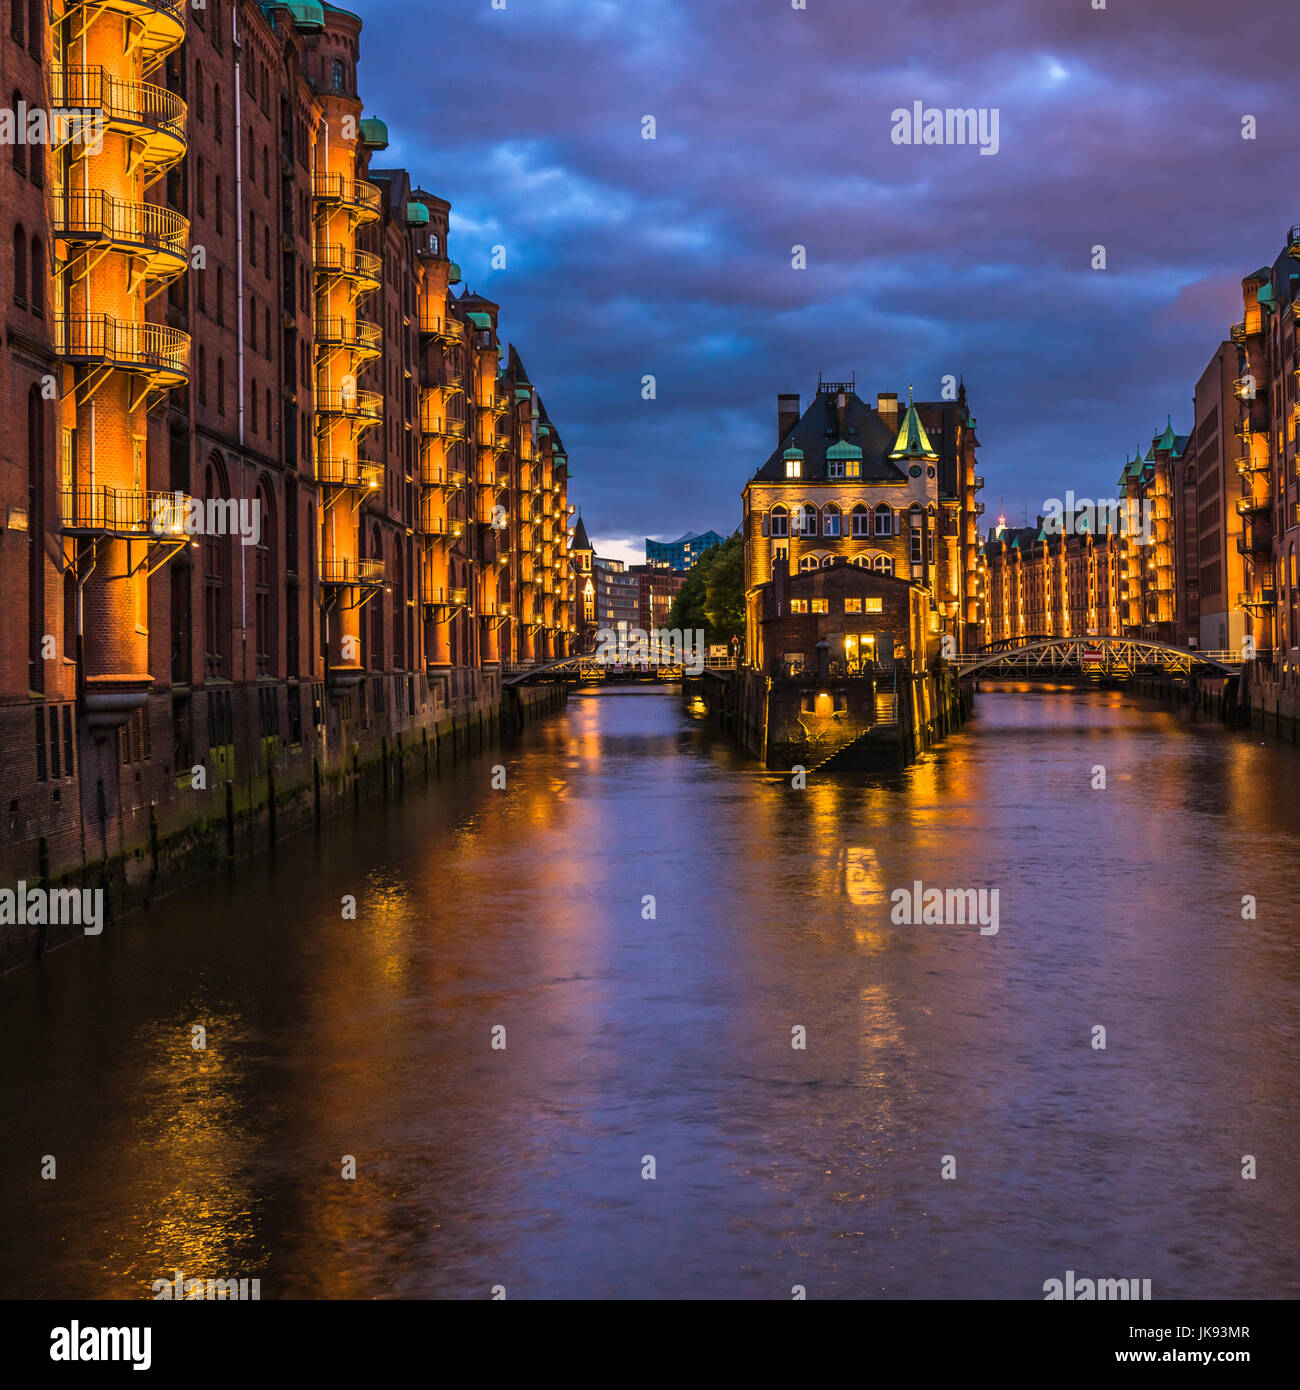 Water castle in old Speicherstadt or Warehouse district, Hamburg, Germany Stock Photo